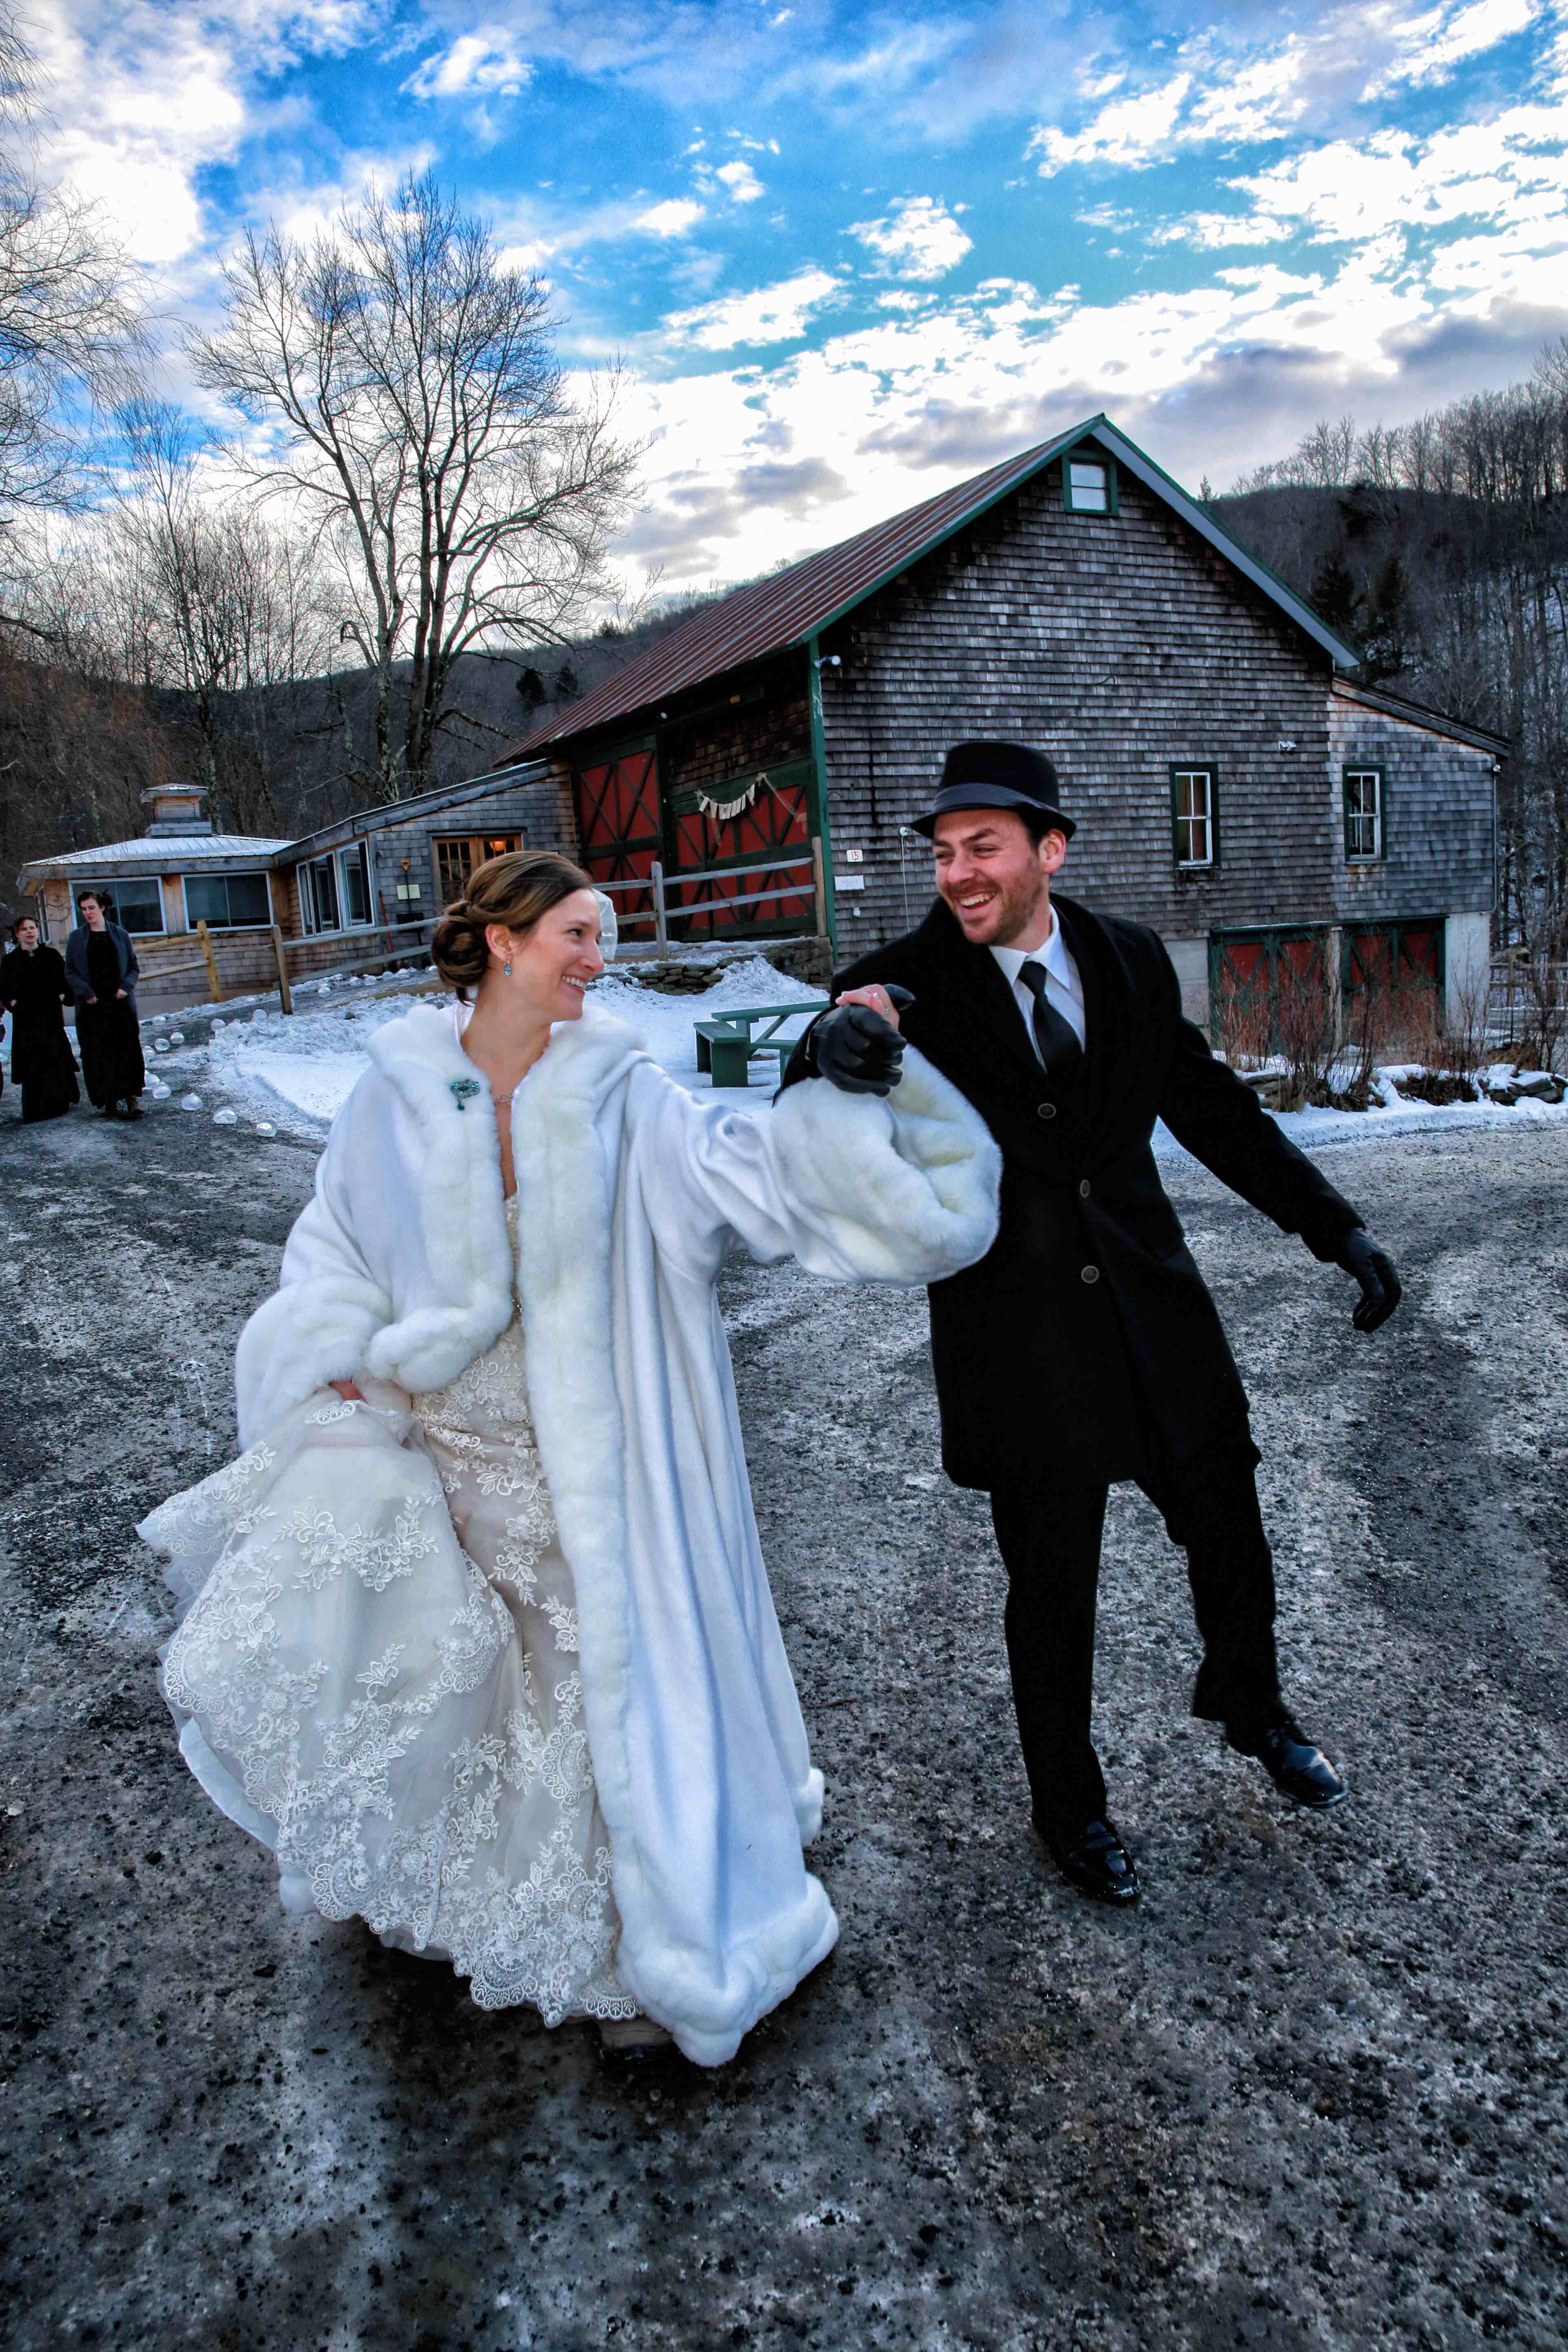 Winter Wedding At Full Moon Resort In Big Indian, NY